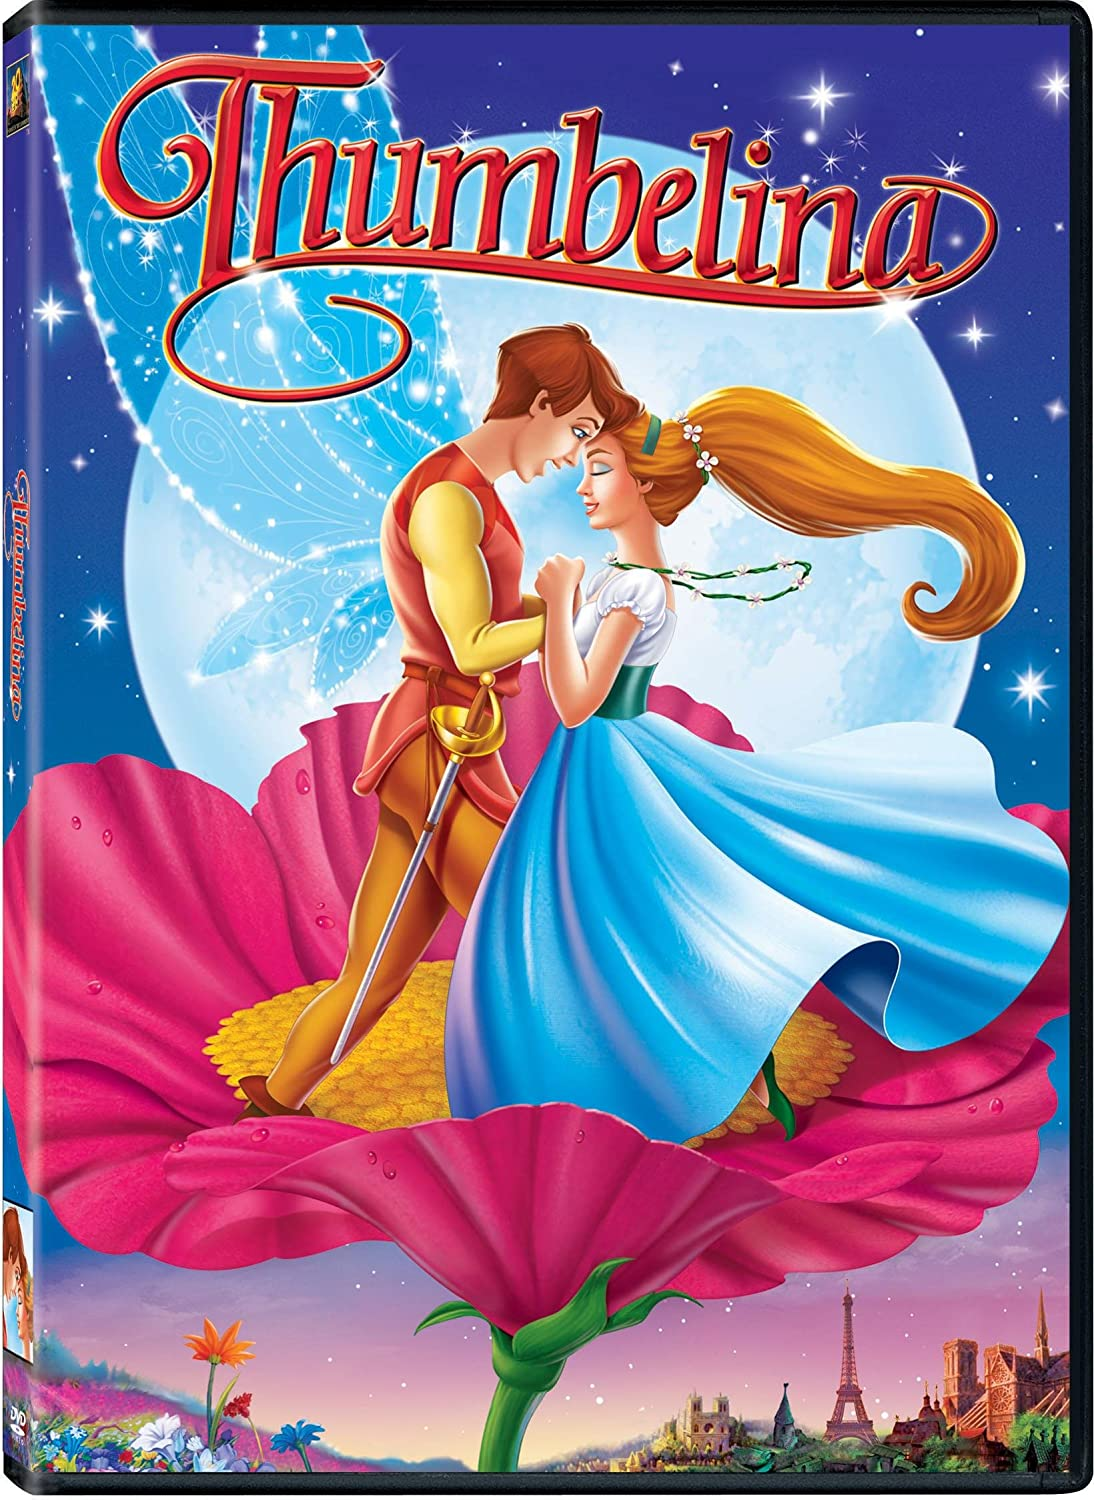 Thumbelina | www.pixshark.com - Images Galleries With A Bite!